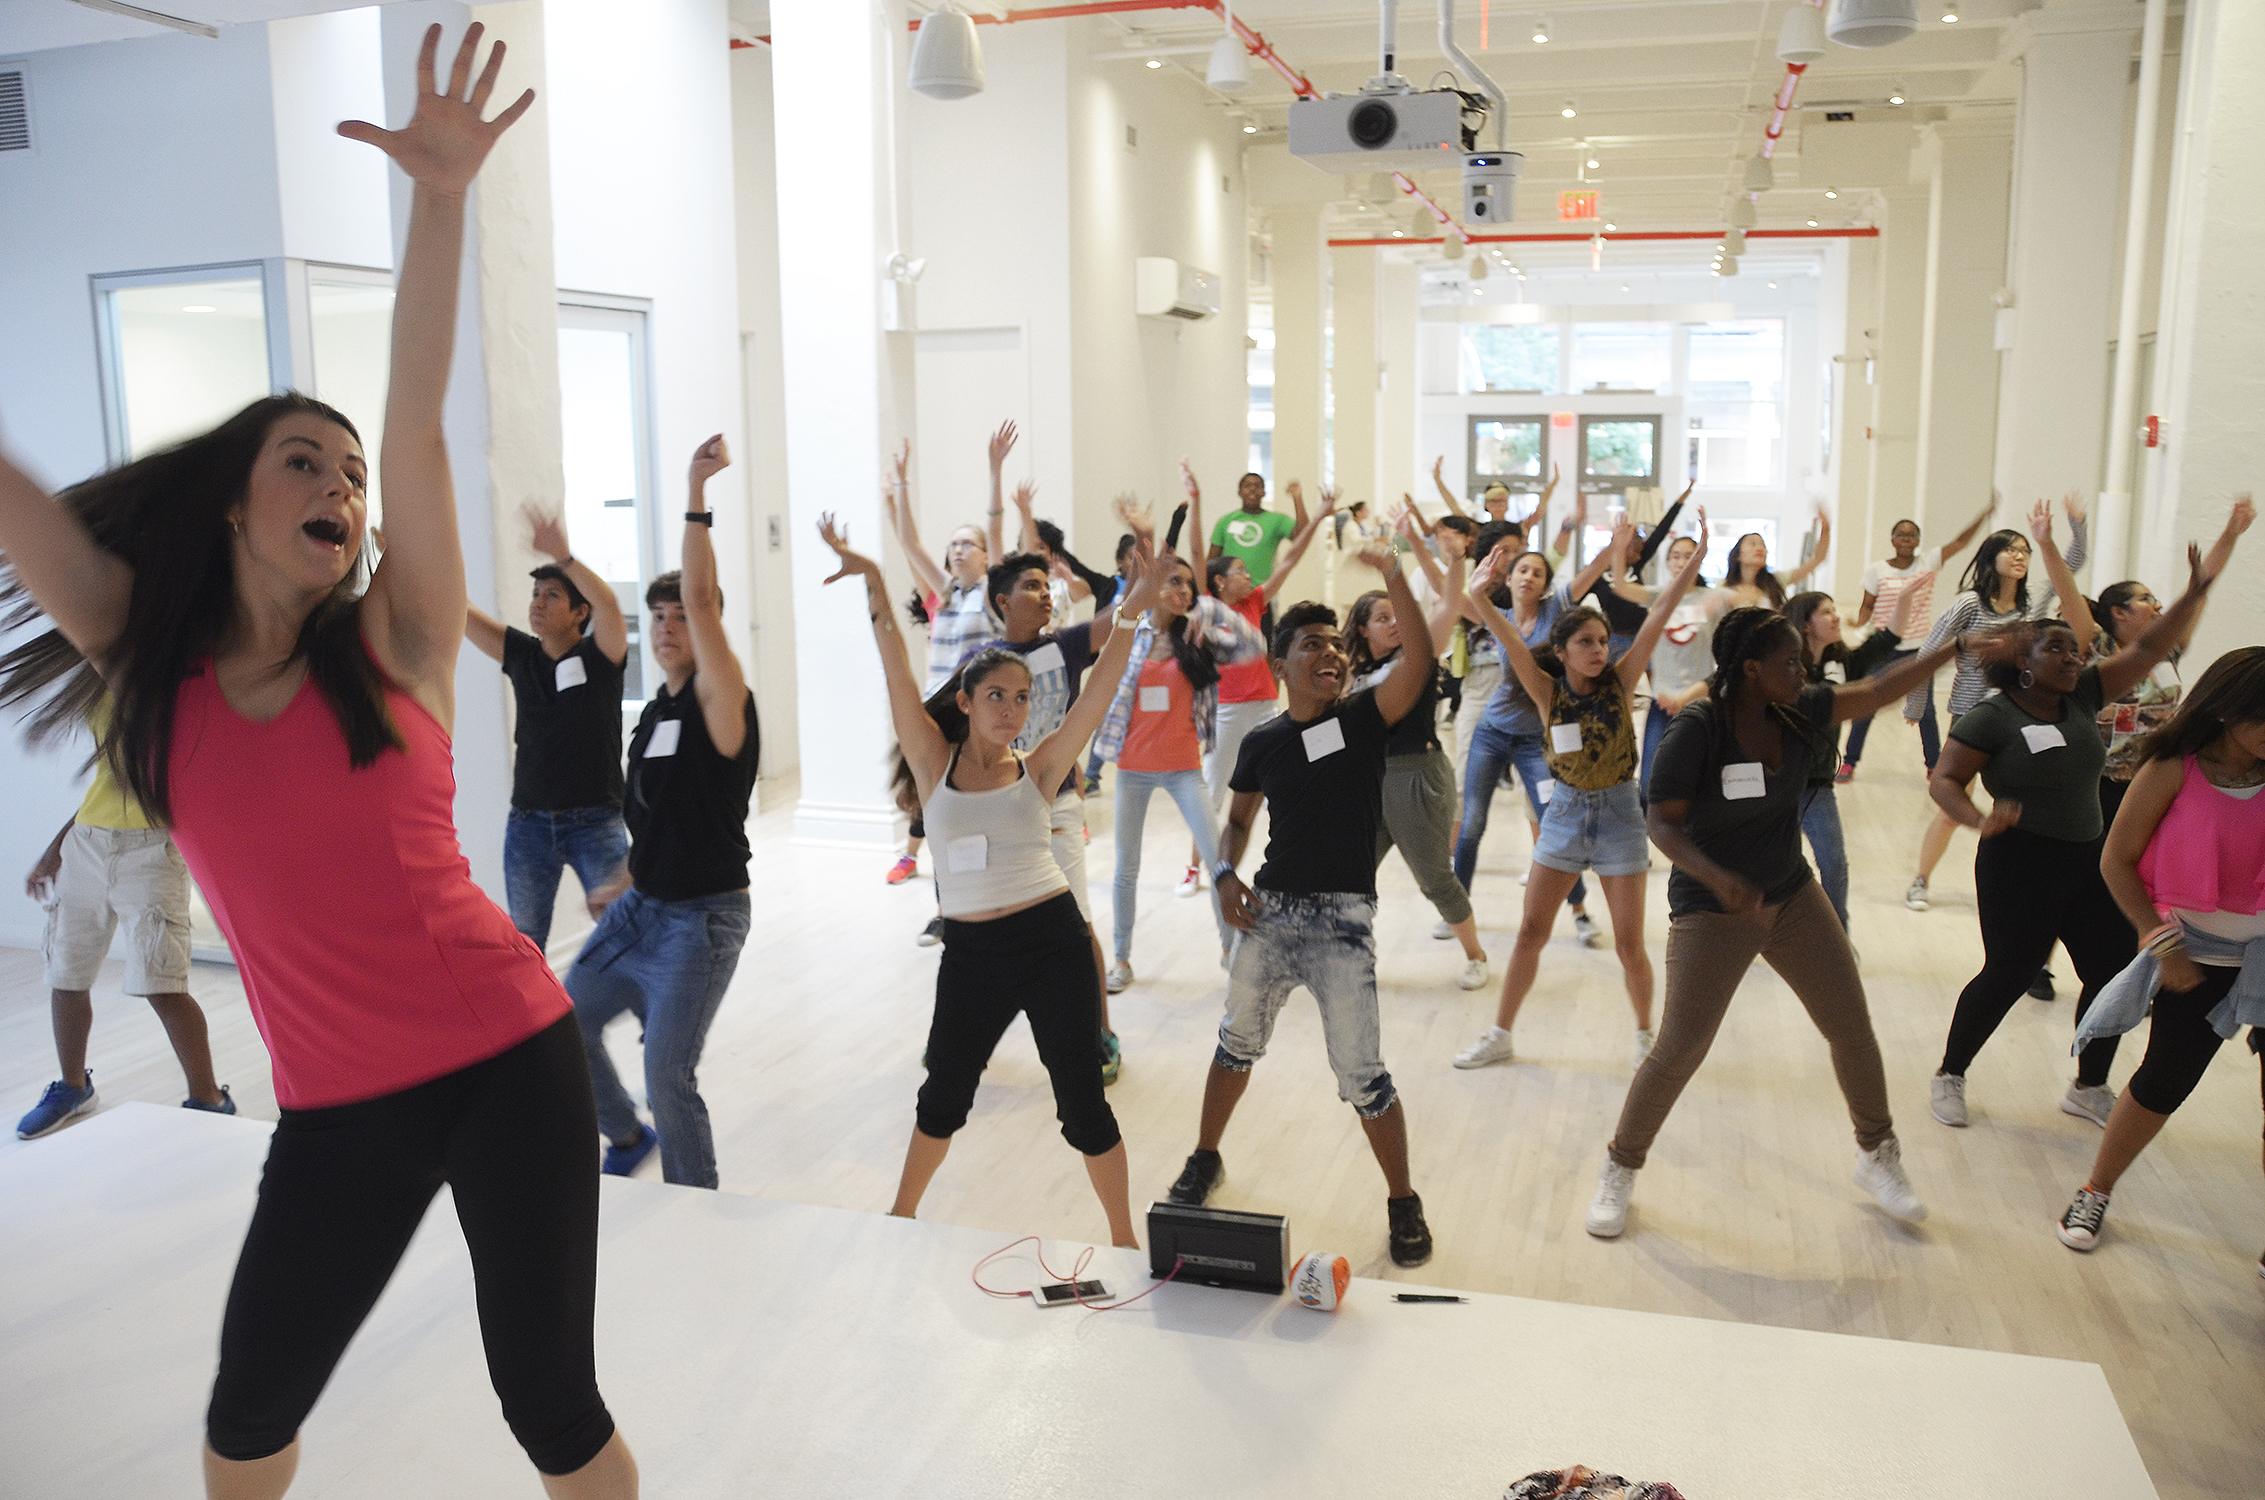 Summer Program - Musical Theatre Arts | Sing for Hope Arts Week 2018